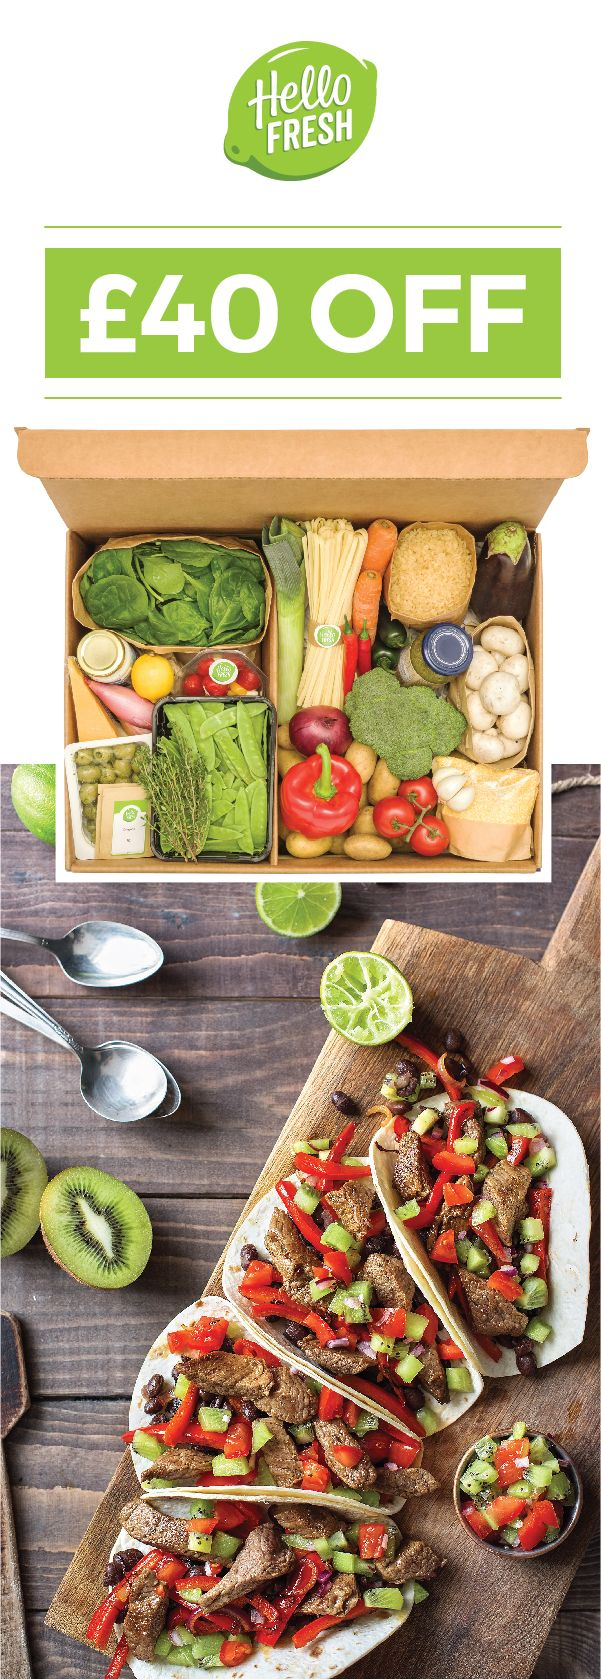 Introducing a fresh take on dinnertime for 2017! Let HelloFresh bring the spark back to your meals! ➜ Use code HELLOPIN40 at checkout to get £20 off both your first and second box! End date: 03/30